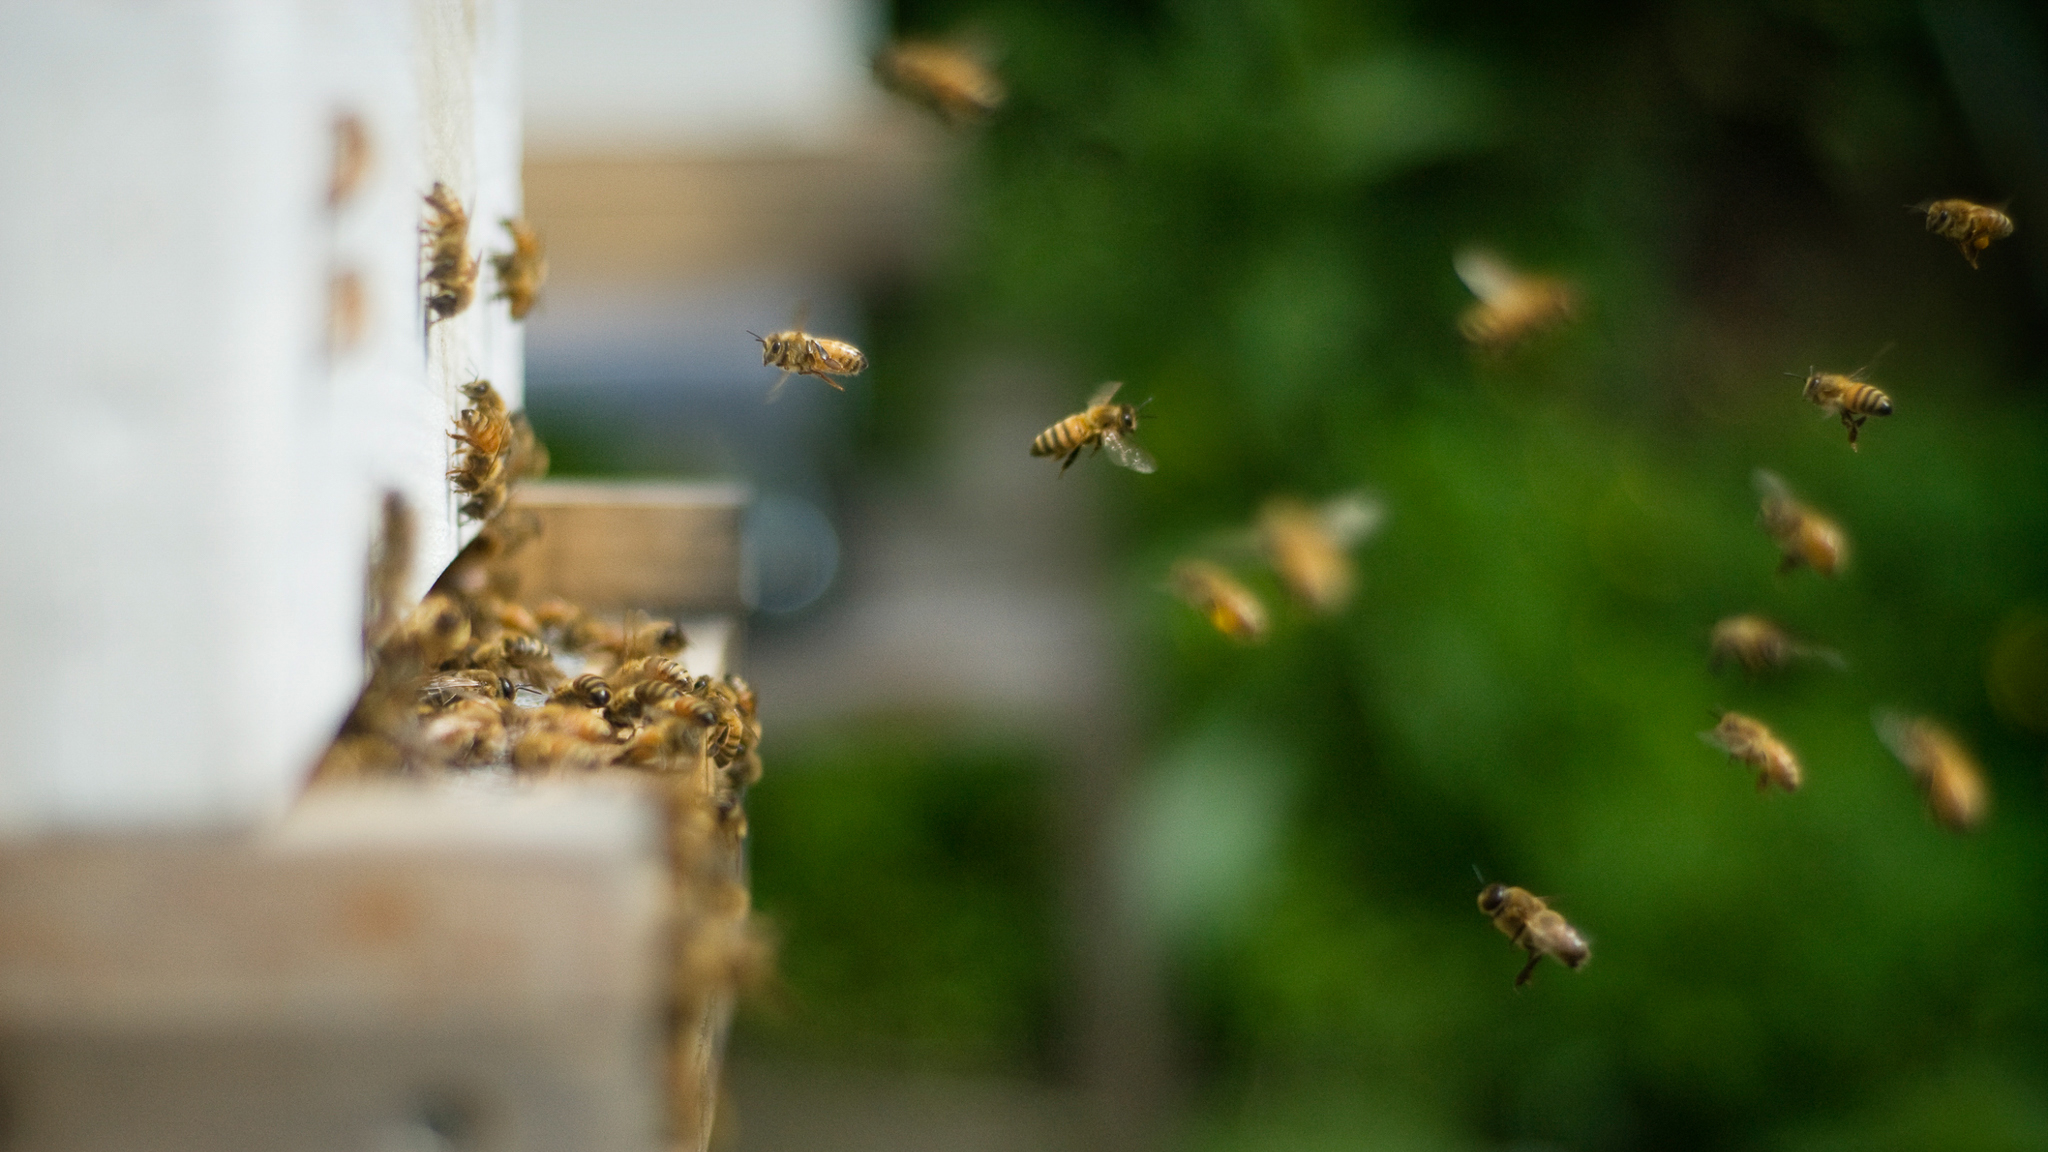 Bee Vectoring Technology hopes to one day adapt its products for use in honey bee hives, which are more common in the pollination industry, serve a different range of crops, and are much larger than commercial bumblebee hives.